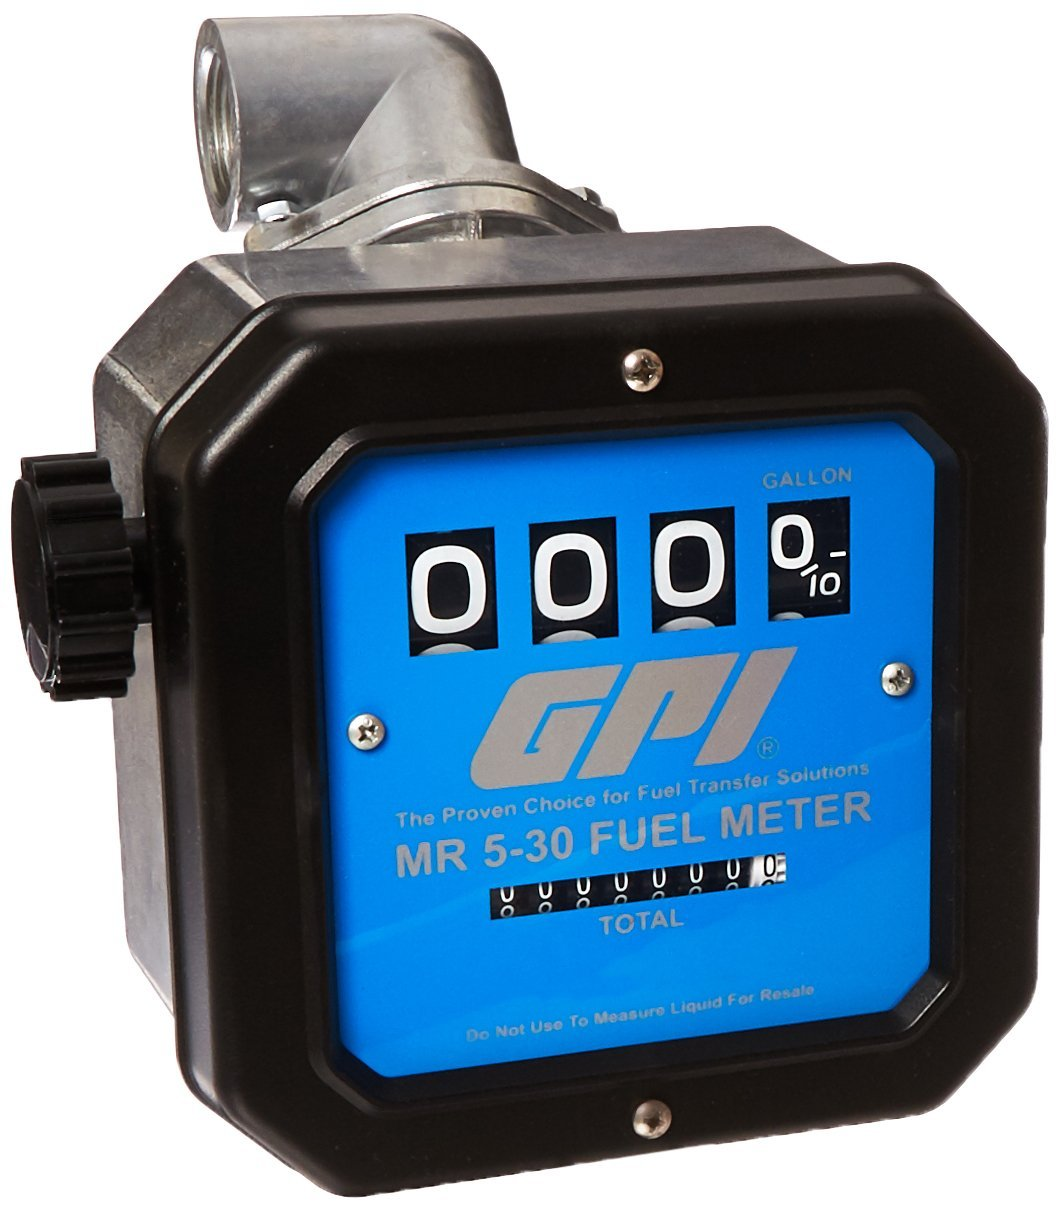 GPI 126300-43, MR530-G8N, Mechanical Fuel Flowmeter, 1-Inch FNPT Inlet/Outlet, 5-30 GPM with 90 Degree Fitting, 4-Digit Batch Display, Non-Resettable Cumulative Total, +/-2 Percent Accuracy